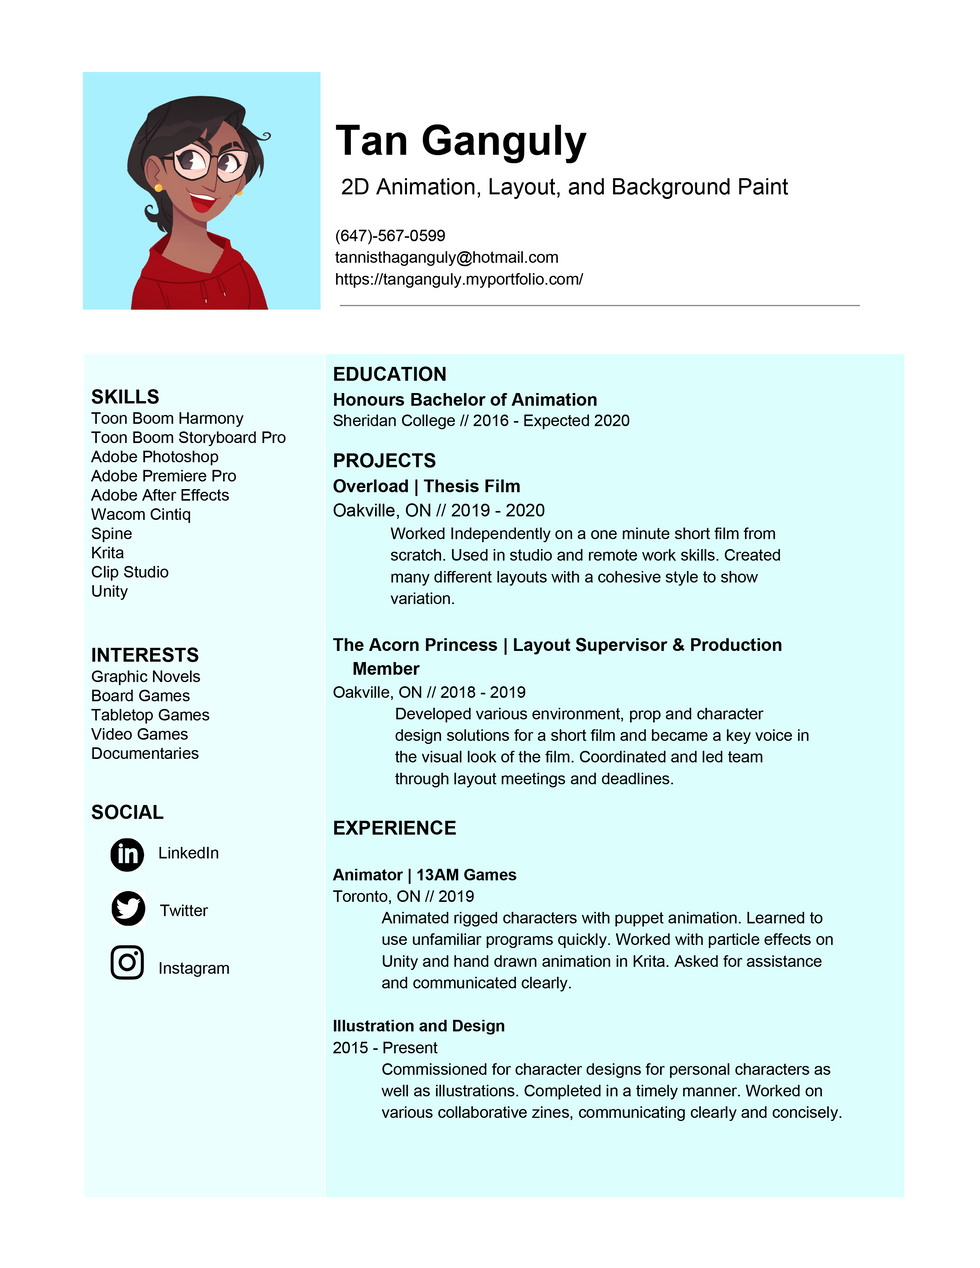 RESUME (8)-1.png